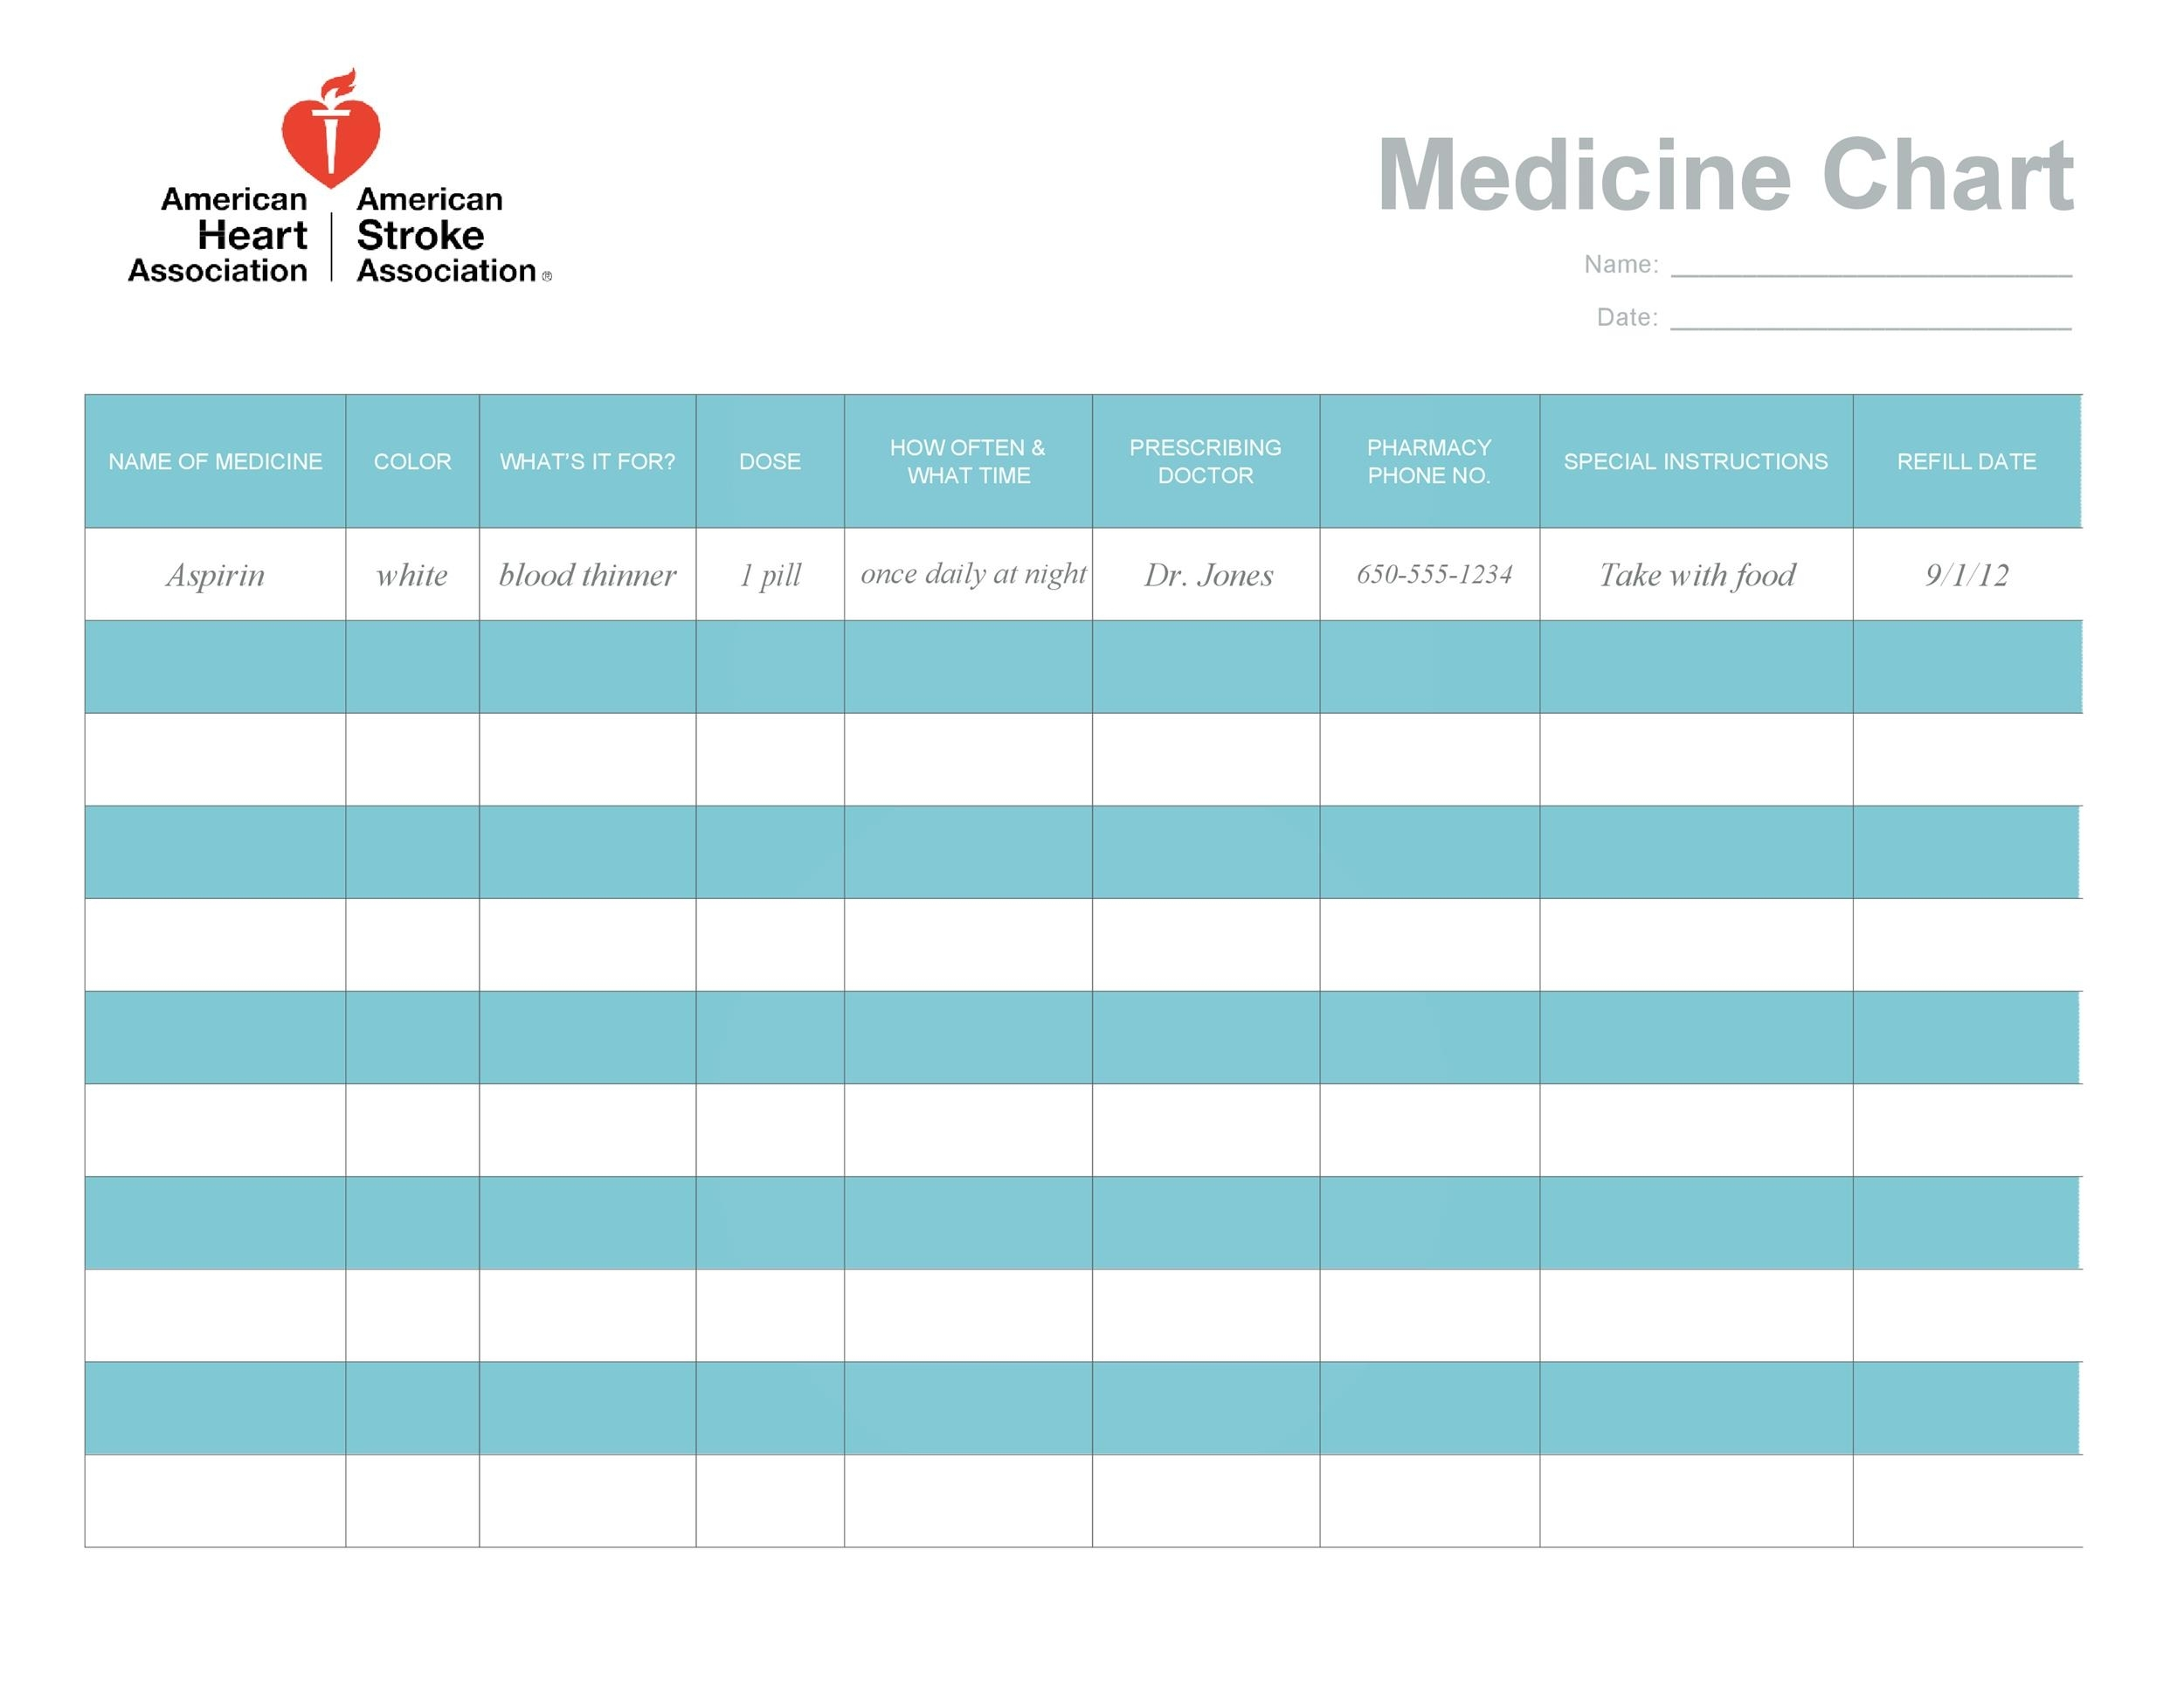 40 Great Medication Schedule Templates (+Medication Calendars) pertaining to Medication Sheets For 7 Days